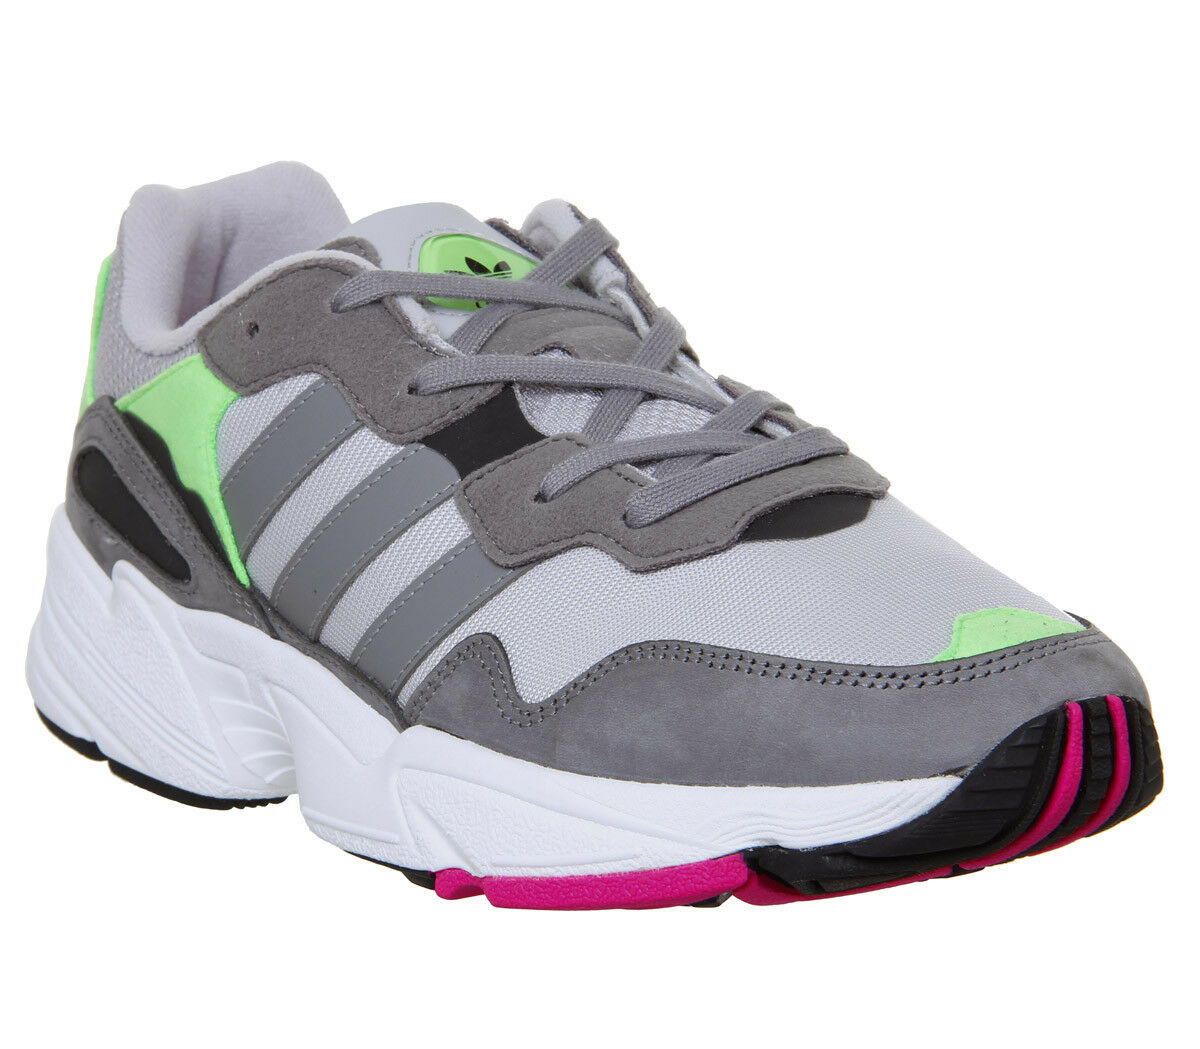 Adidas Yung 96 Trainers grau Two grau Three Shock Rosa